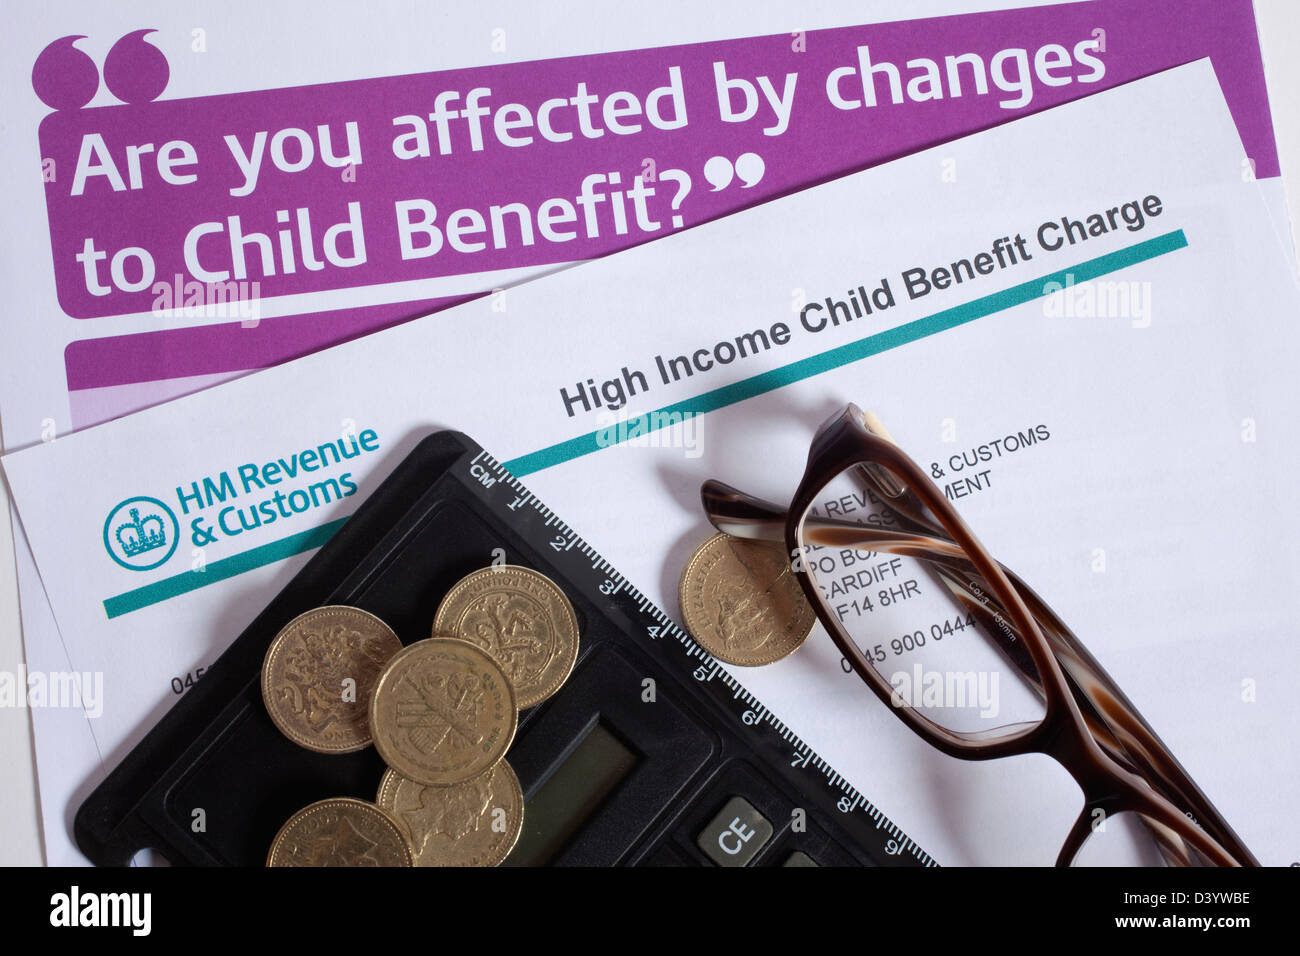 Child Benefit Form Roi Child Benefit Form High Income High income child benefit charge form Stock Photo